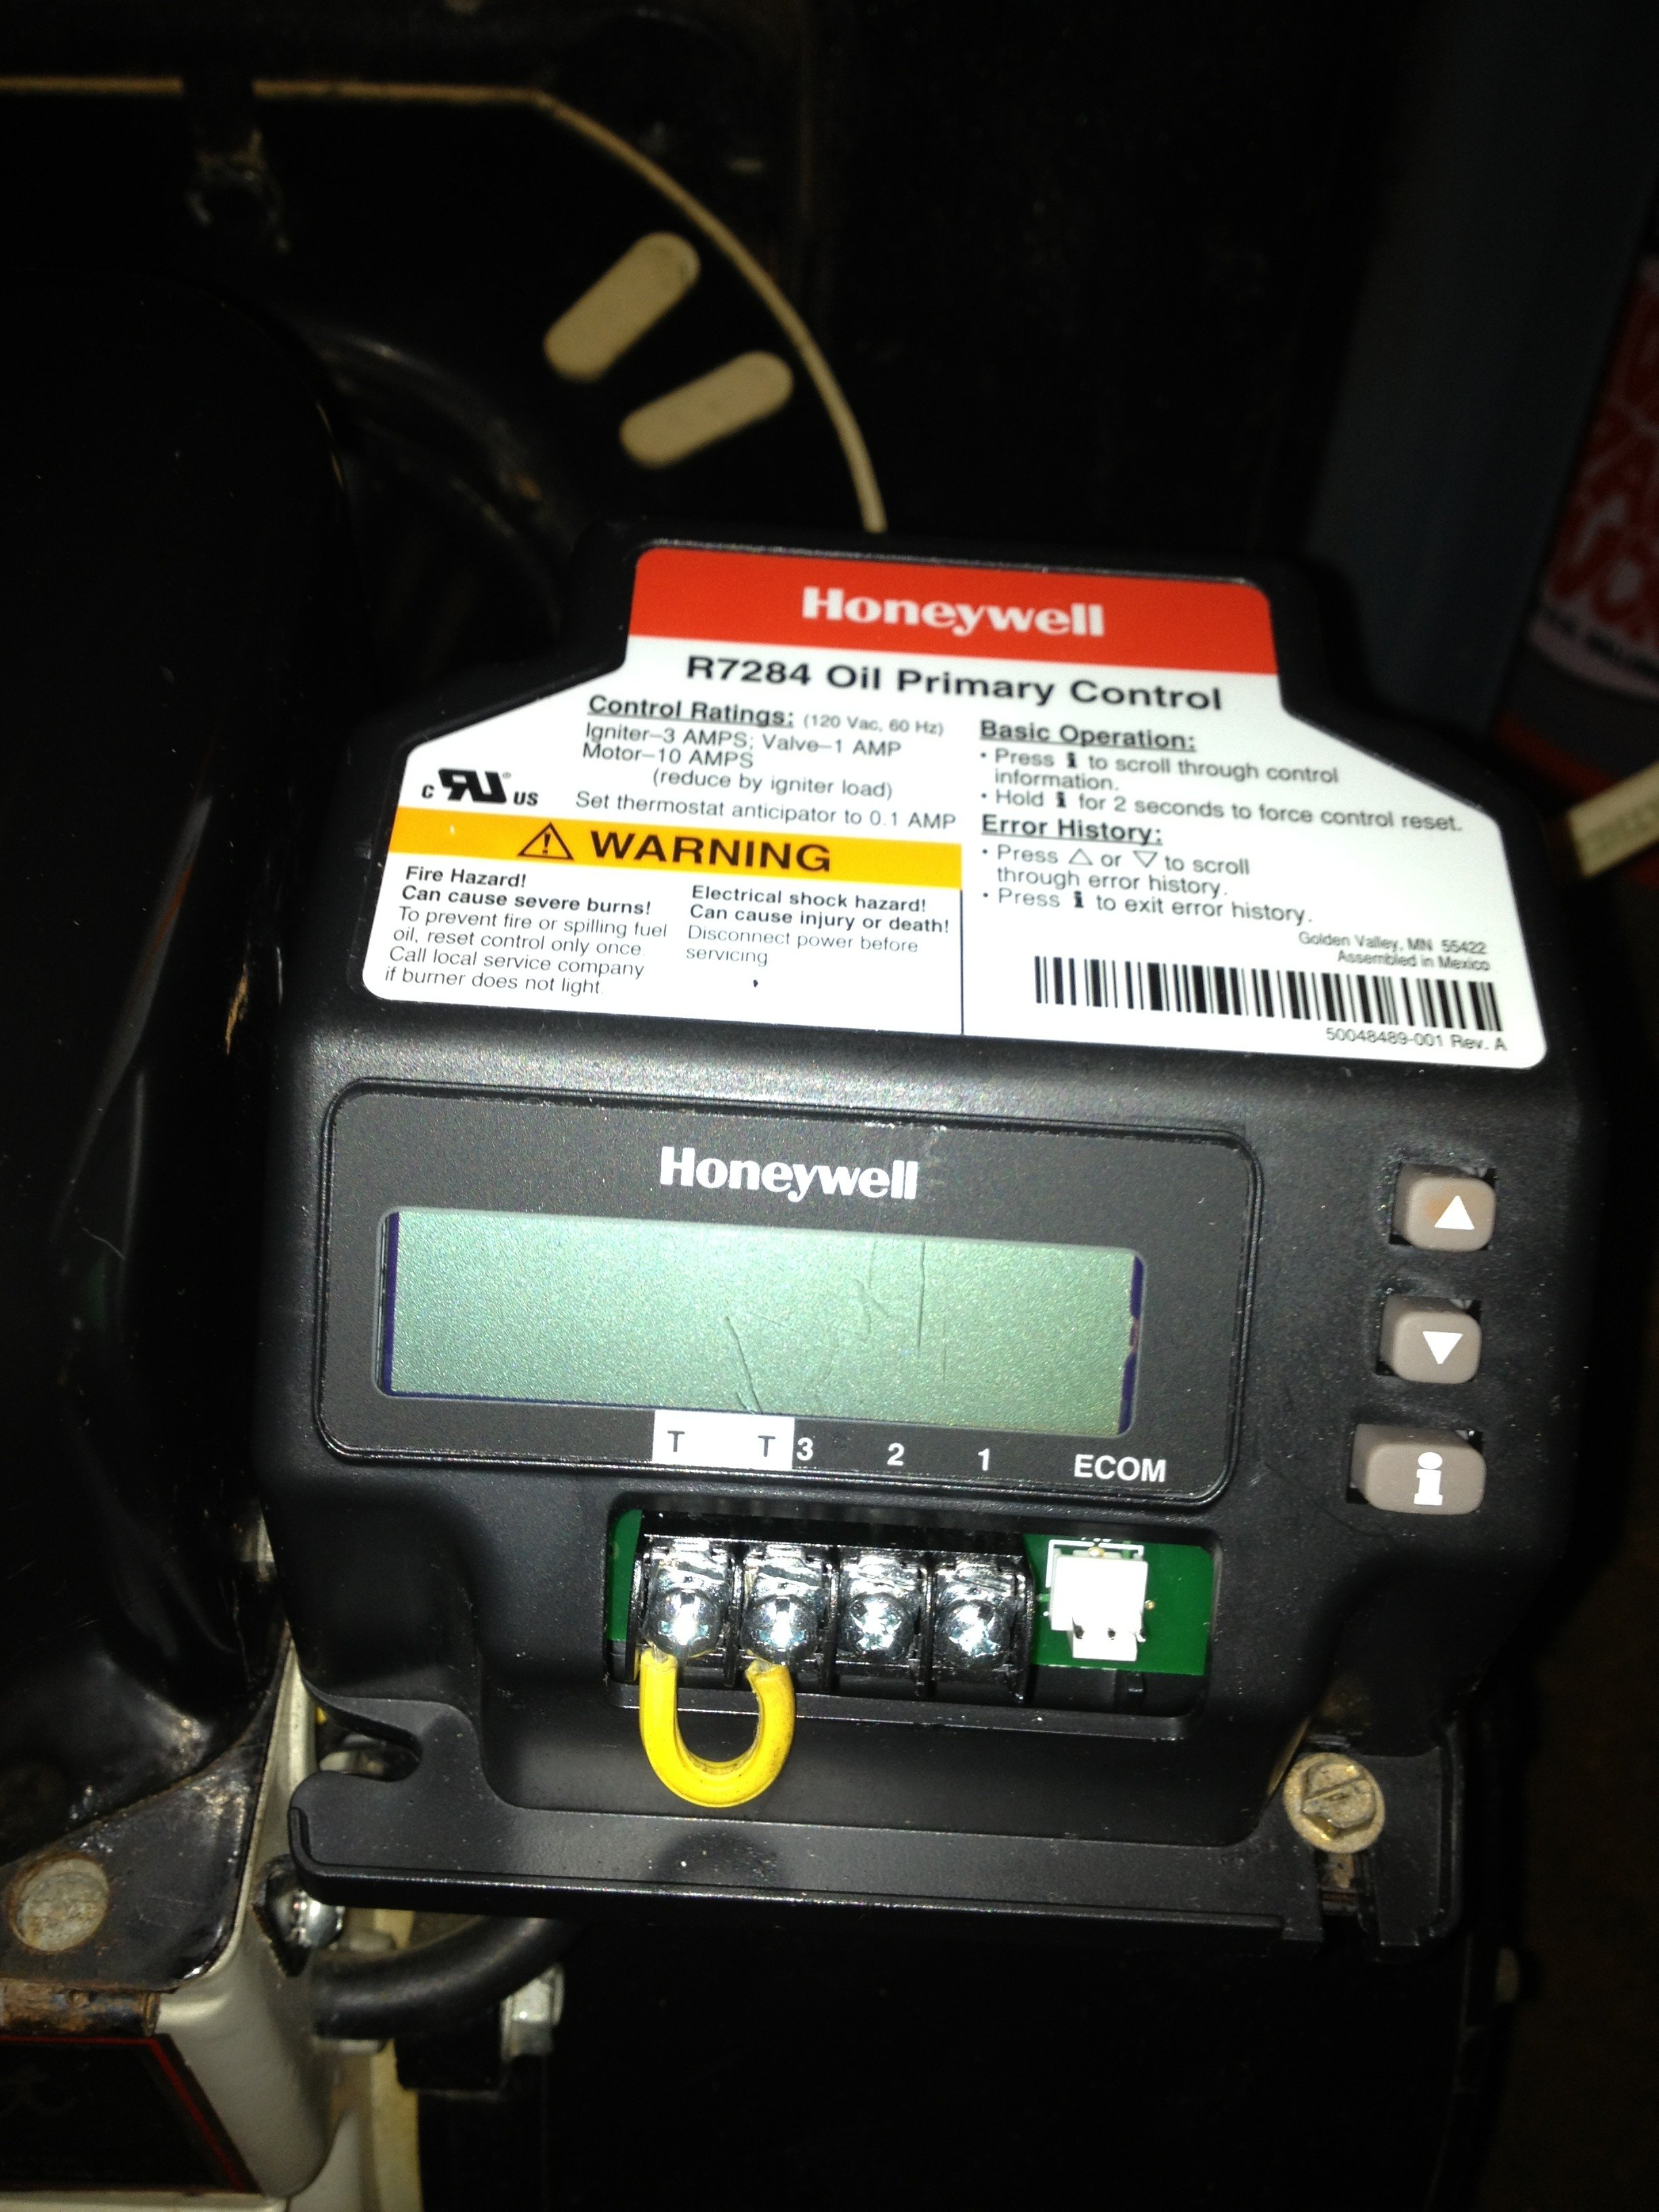 Honeywell R7284 Wiring Diagram Free Download bull Oasis dl co